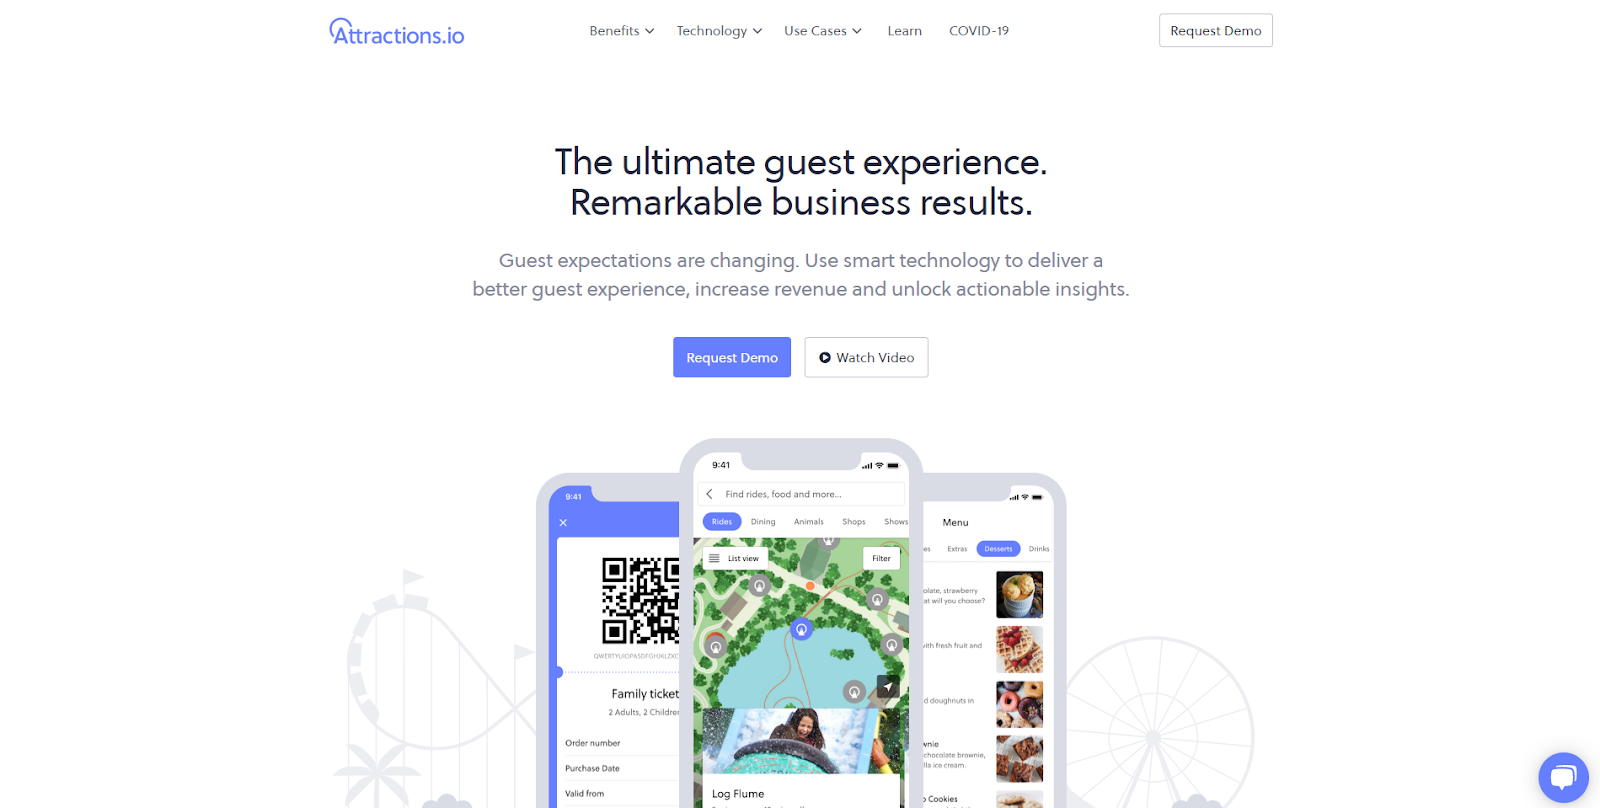 Attractions.io homepage screenshot with three mobile phones graphics